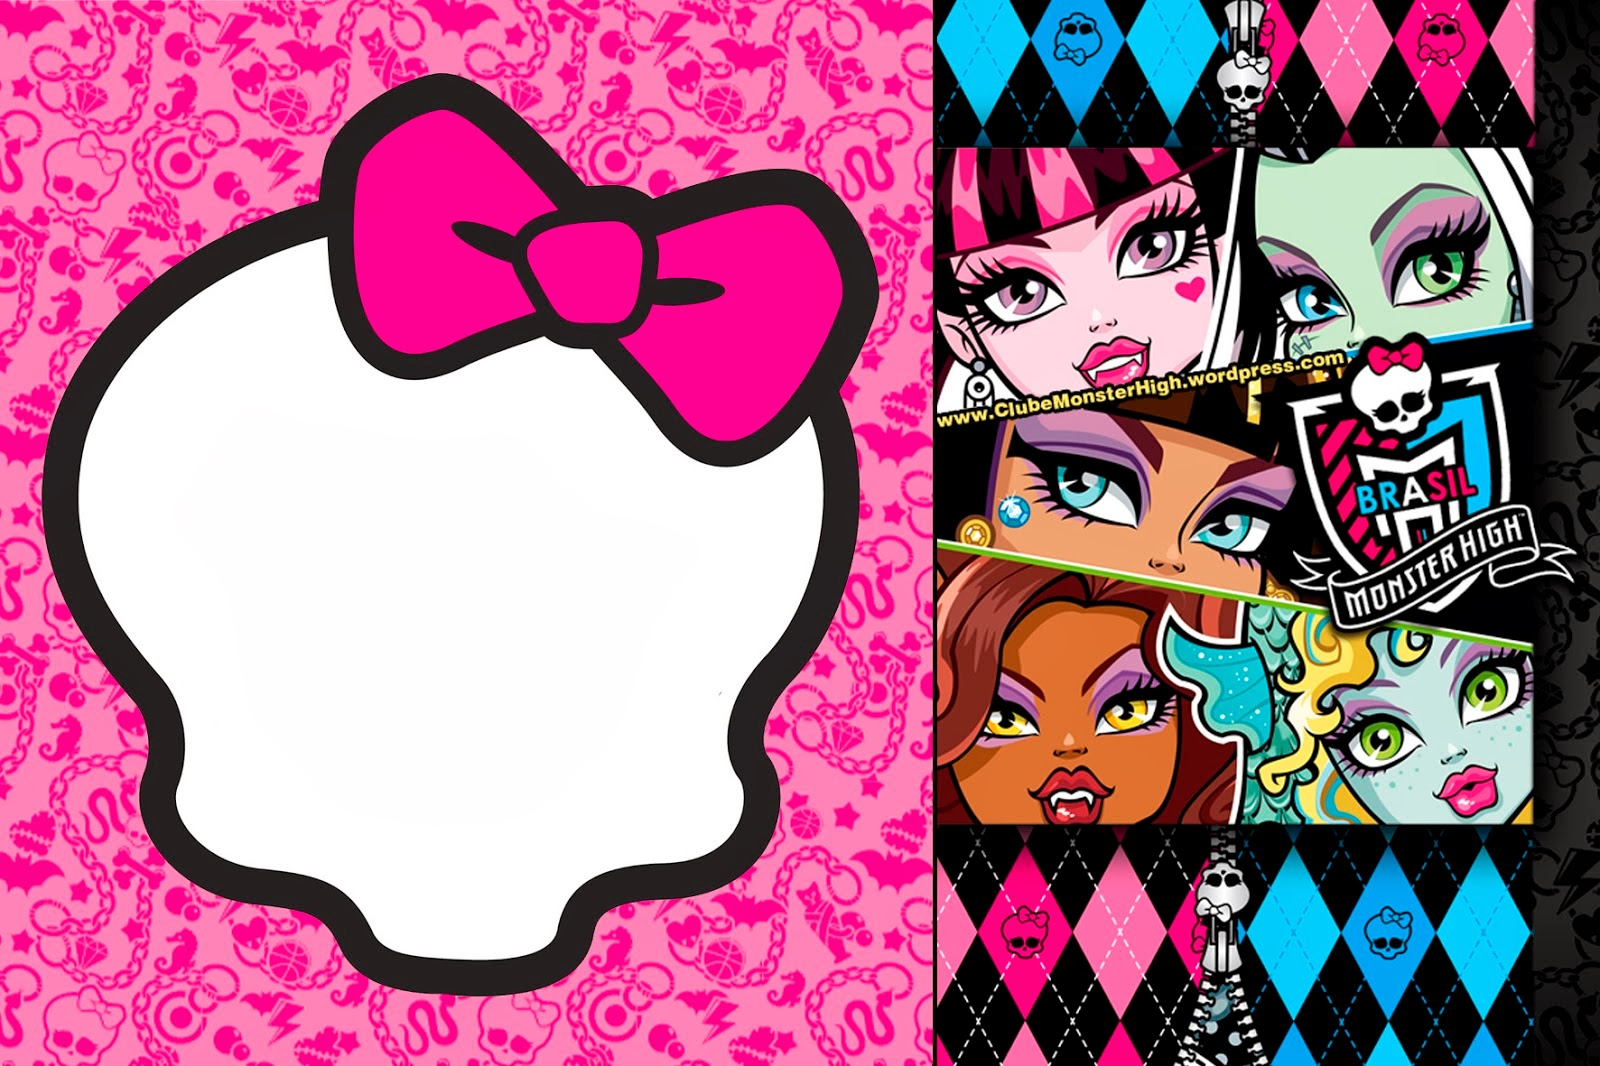 Monster High Invitations and Party Free Printables.  sc 1 st  Oh My Fiesta! & Monster High: Invitations and Party Free Printables. | Oh My Fiesta ...